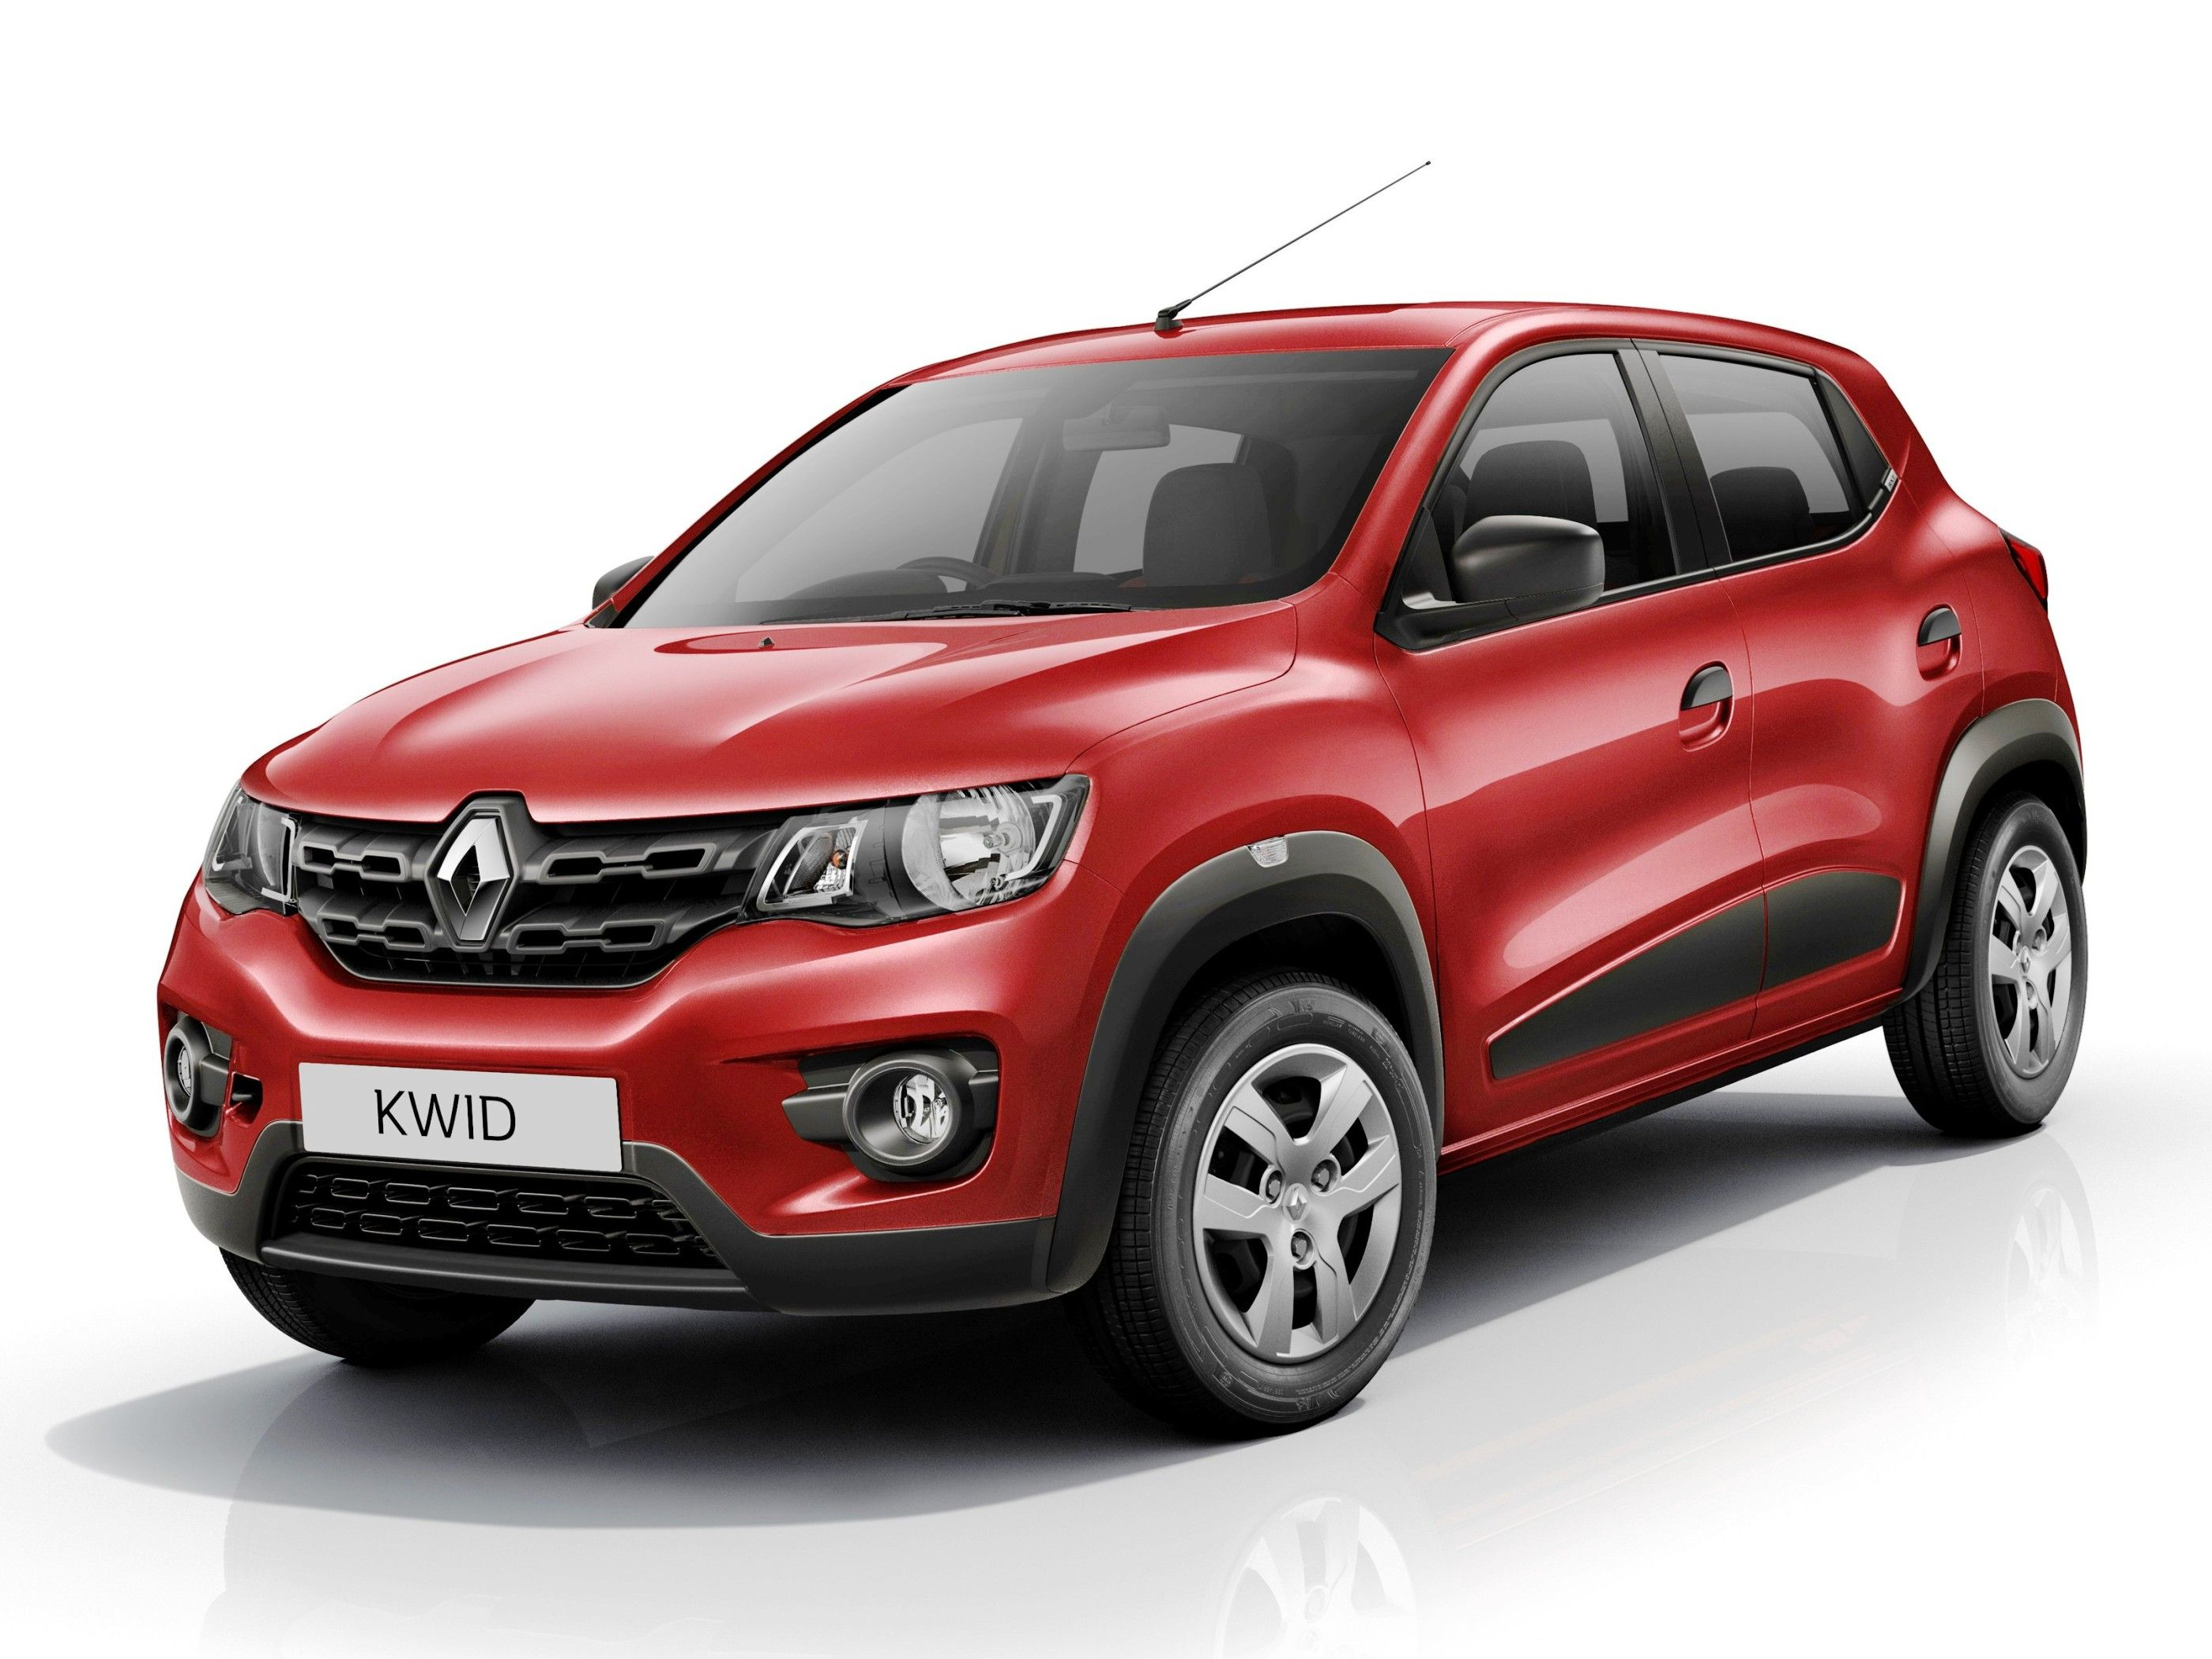 Renault kwid red car hd wallpaper car pixo